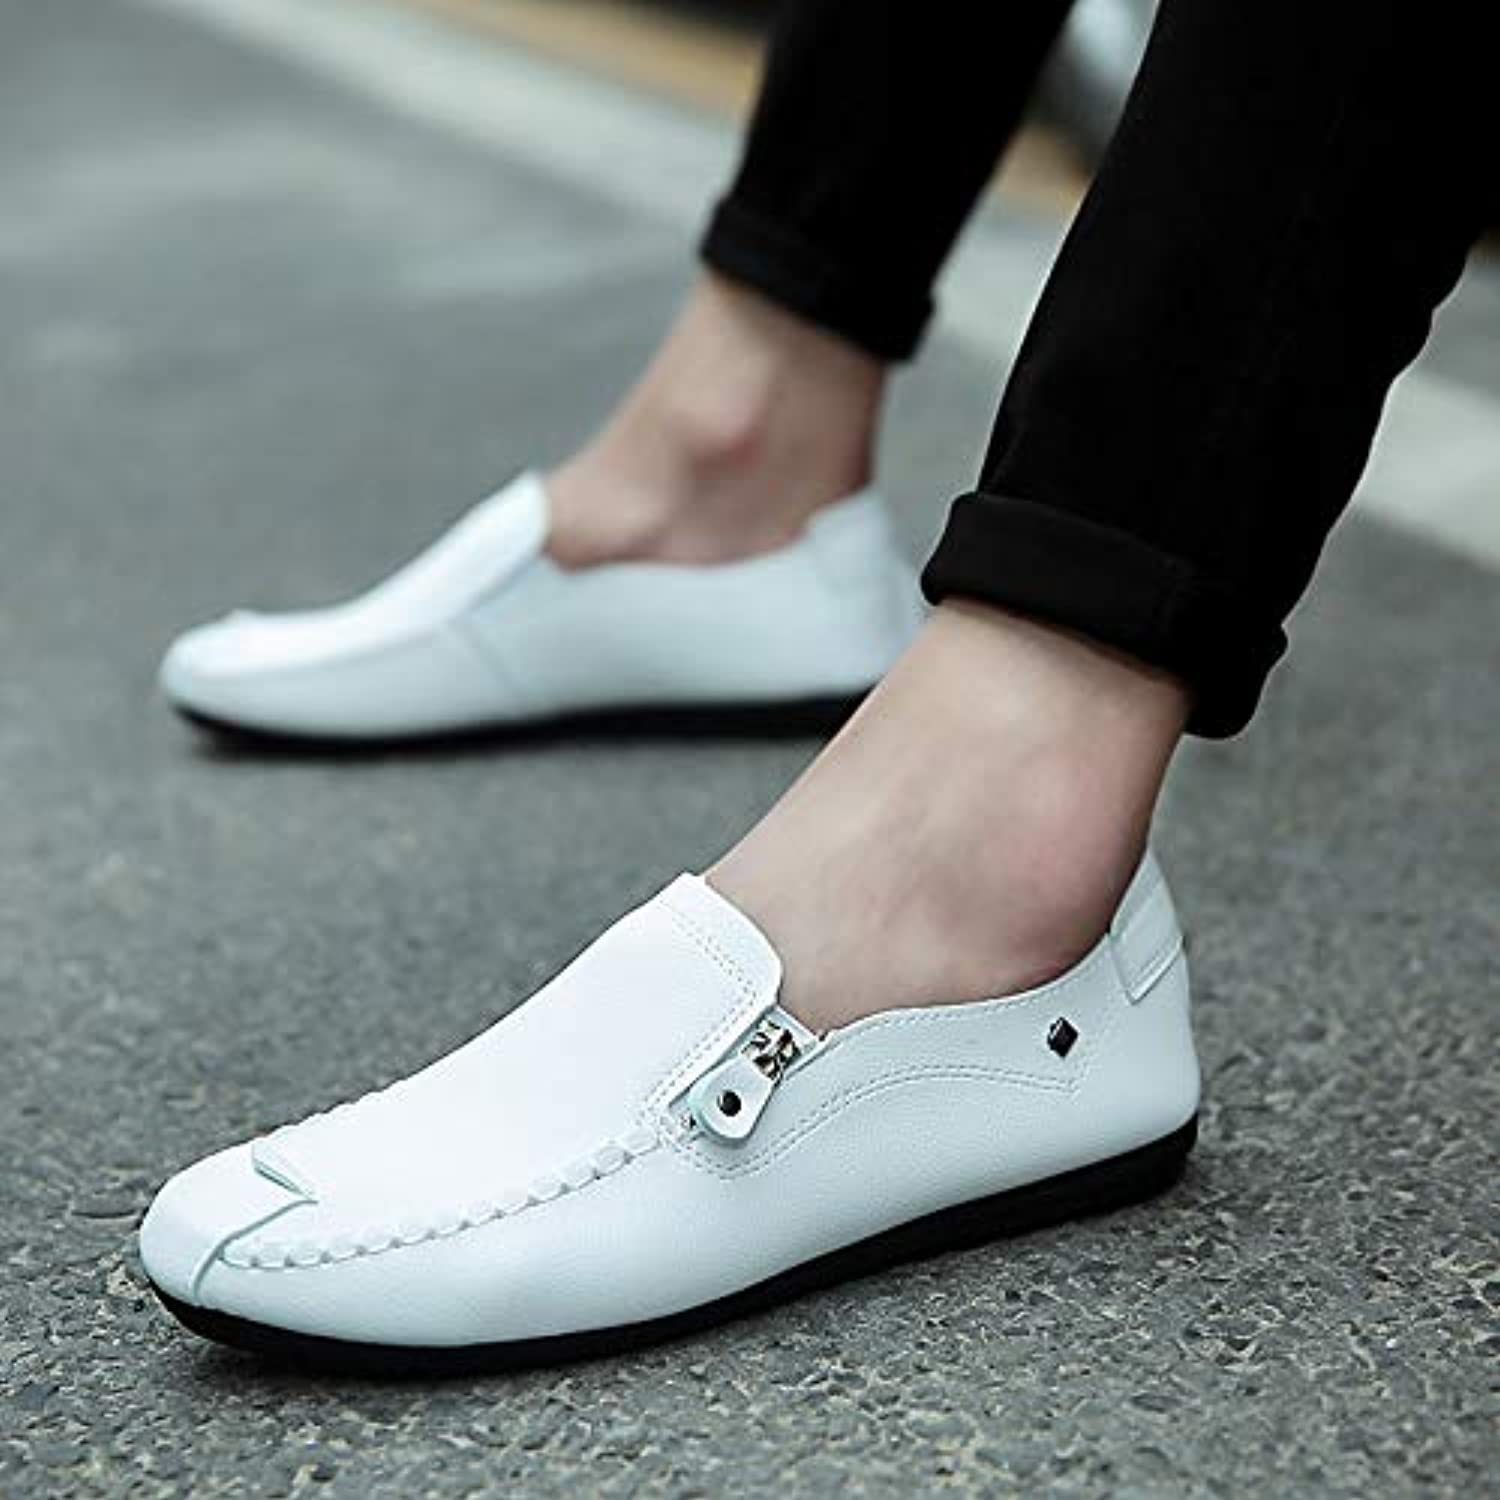 LOVDRAM Men'S Leather shoes Spring New shoes Korean Men'S Peas shoes Casual A Pedal Lazy Trend Fashion Men'S shoes